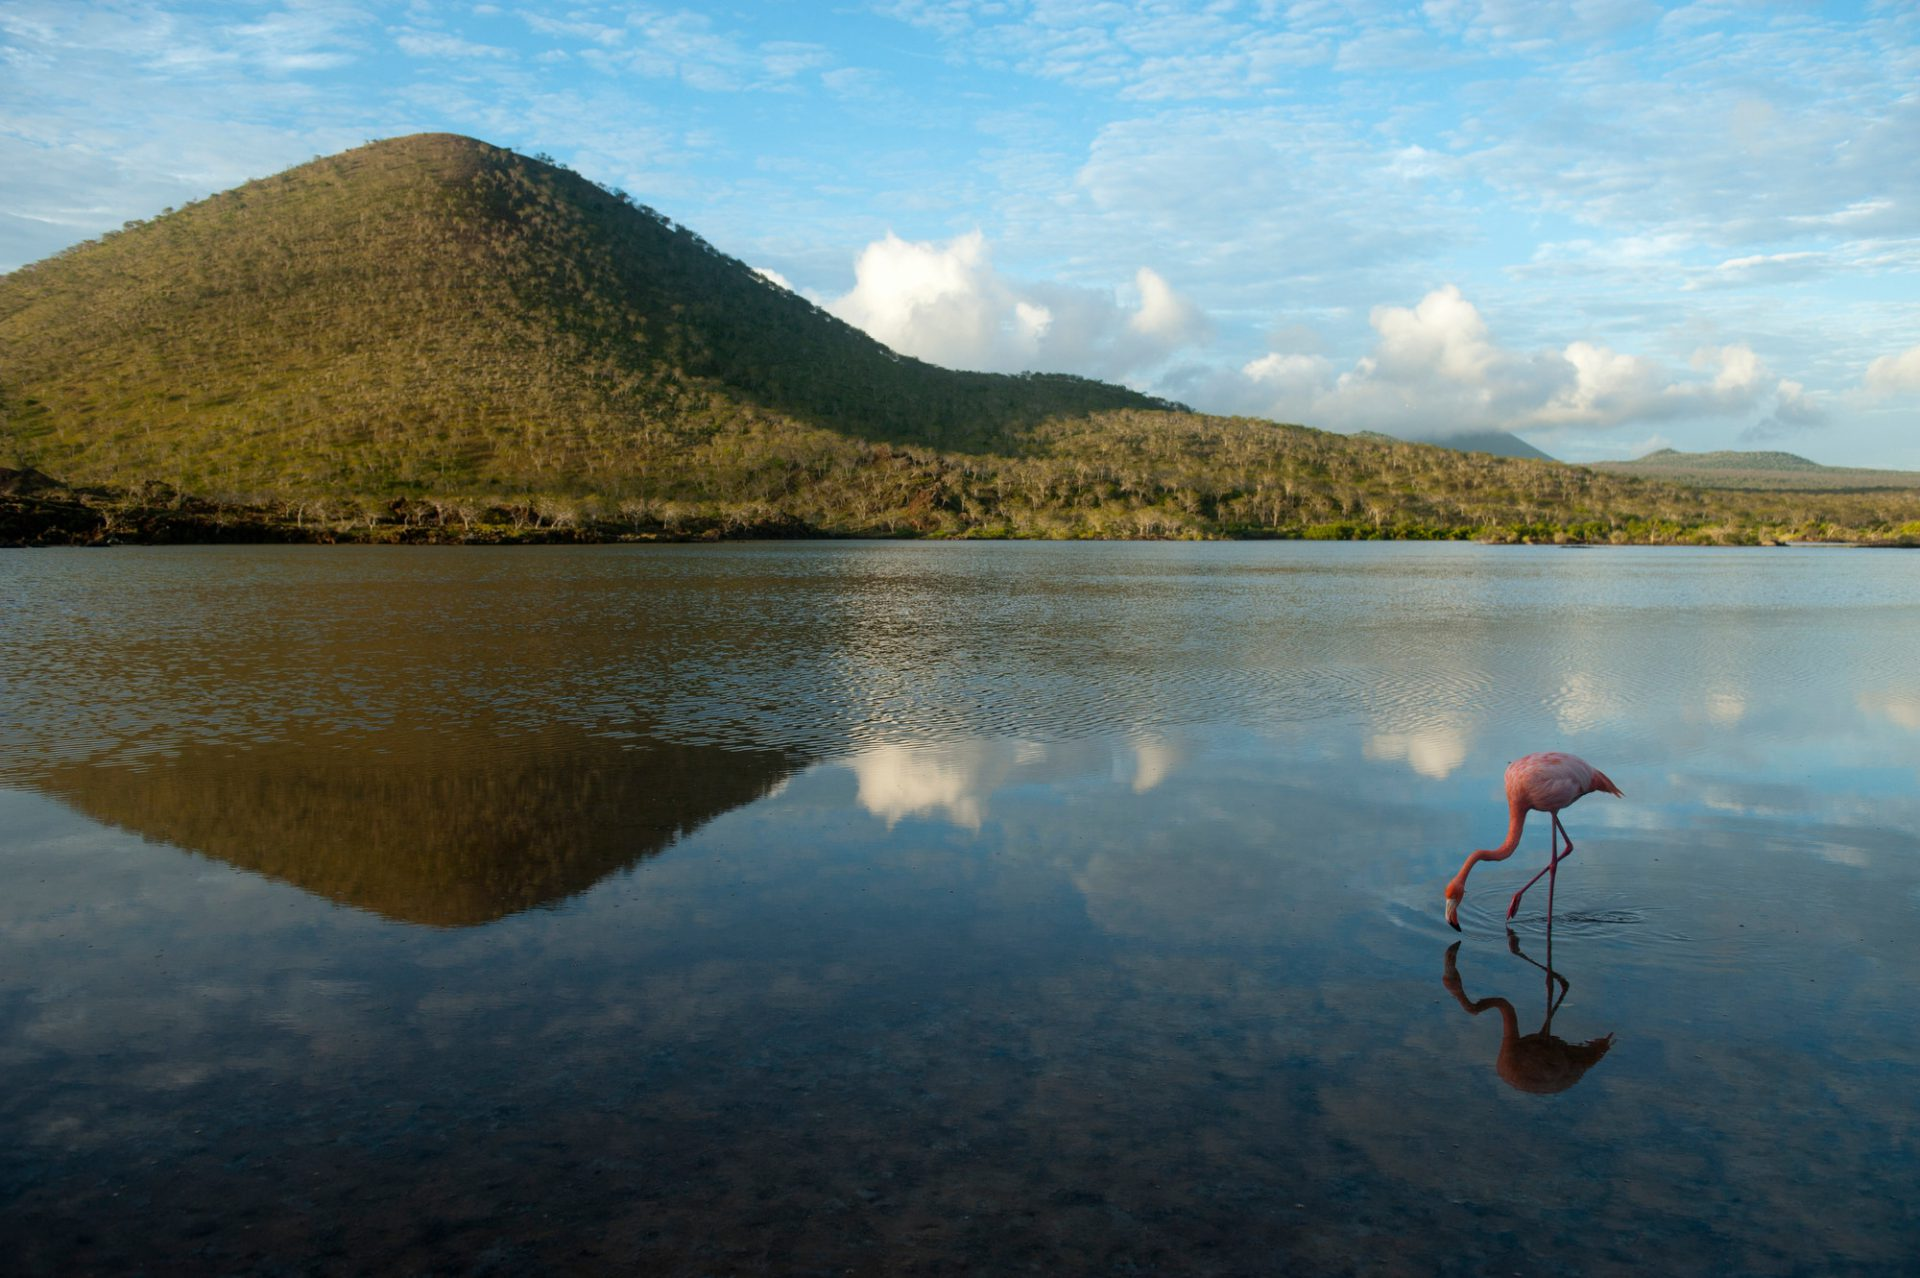 Picture of an American flamingo, Phoenicopterus ruber, on Floreana Island in Galapagos National Park.